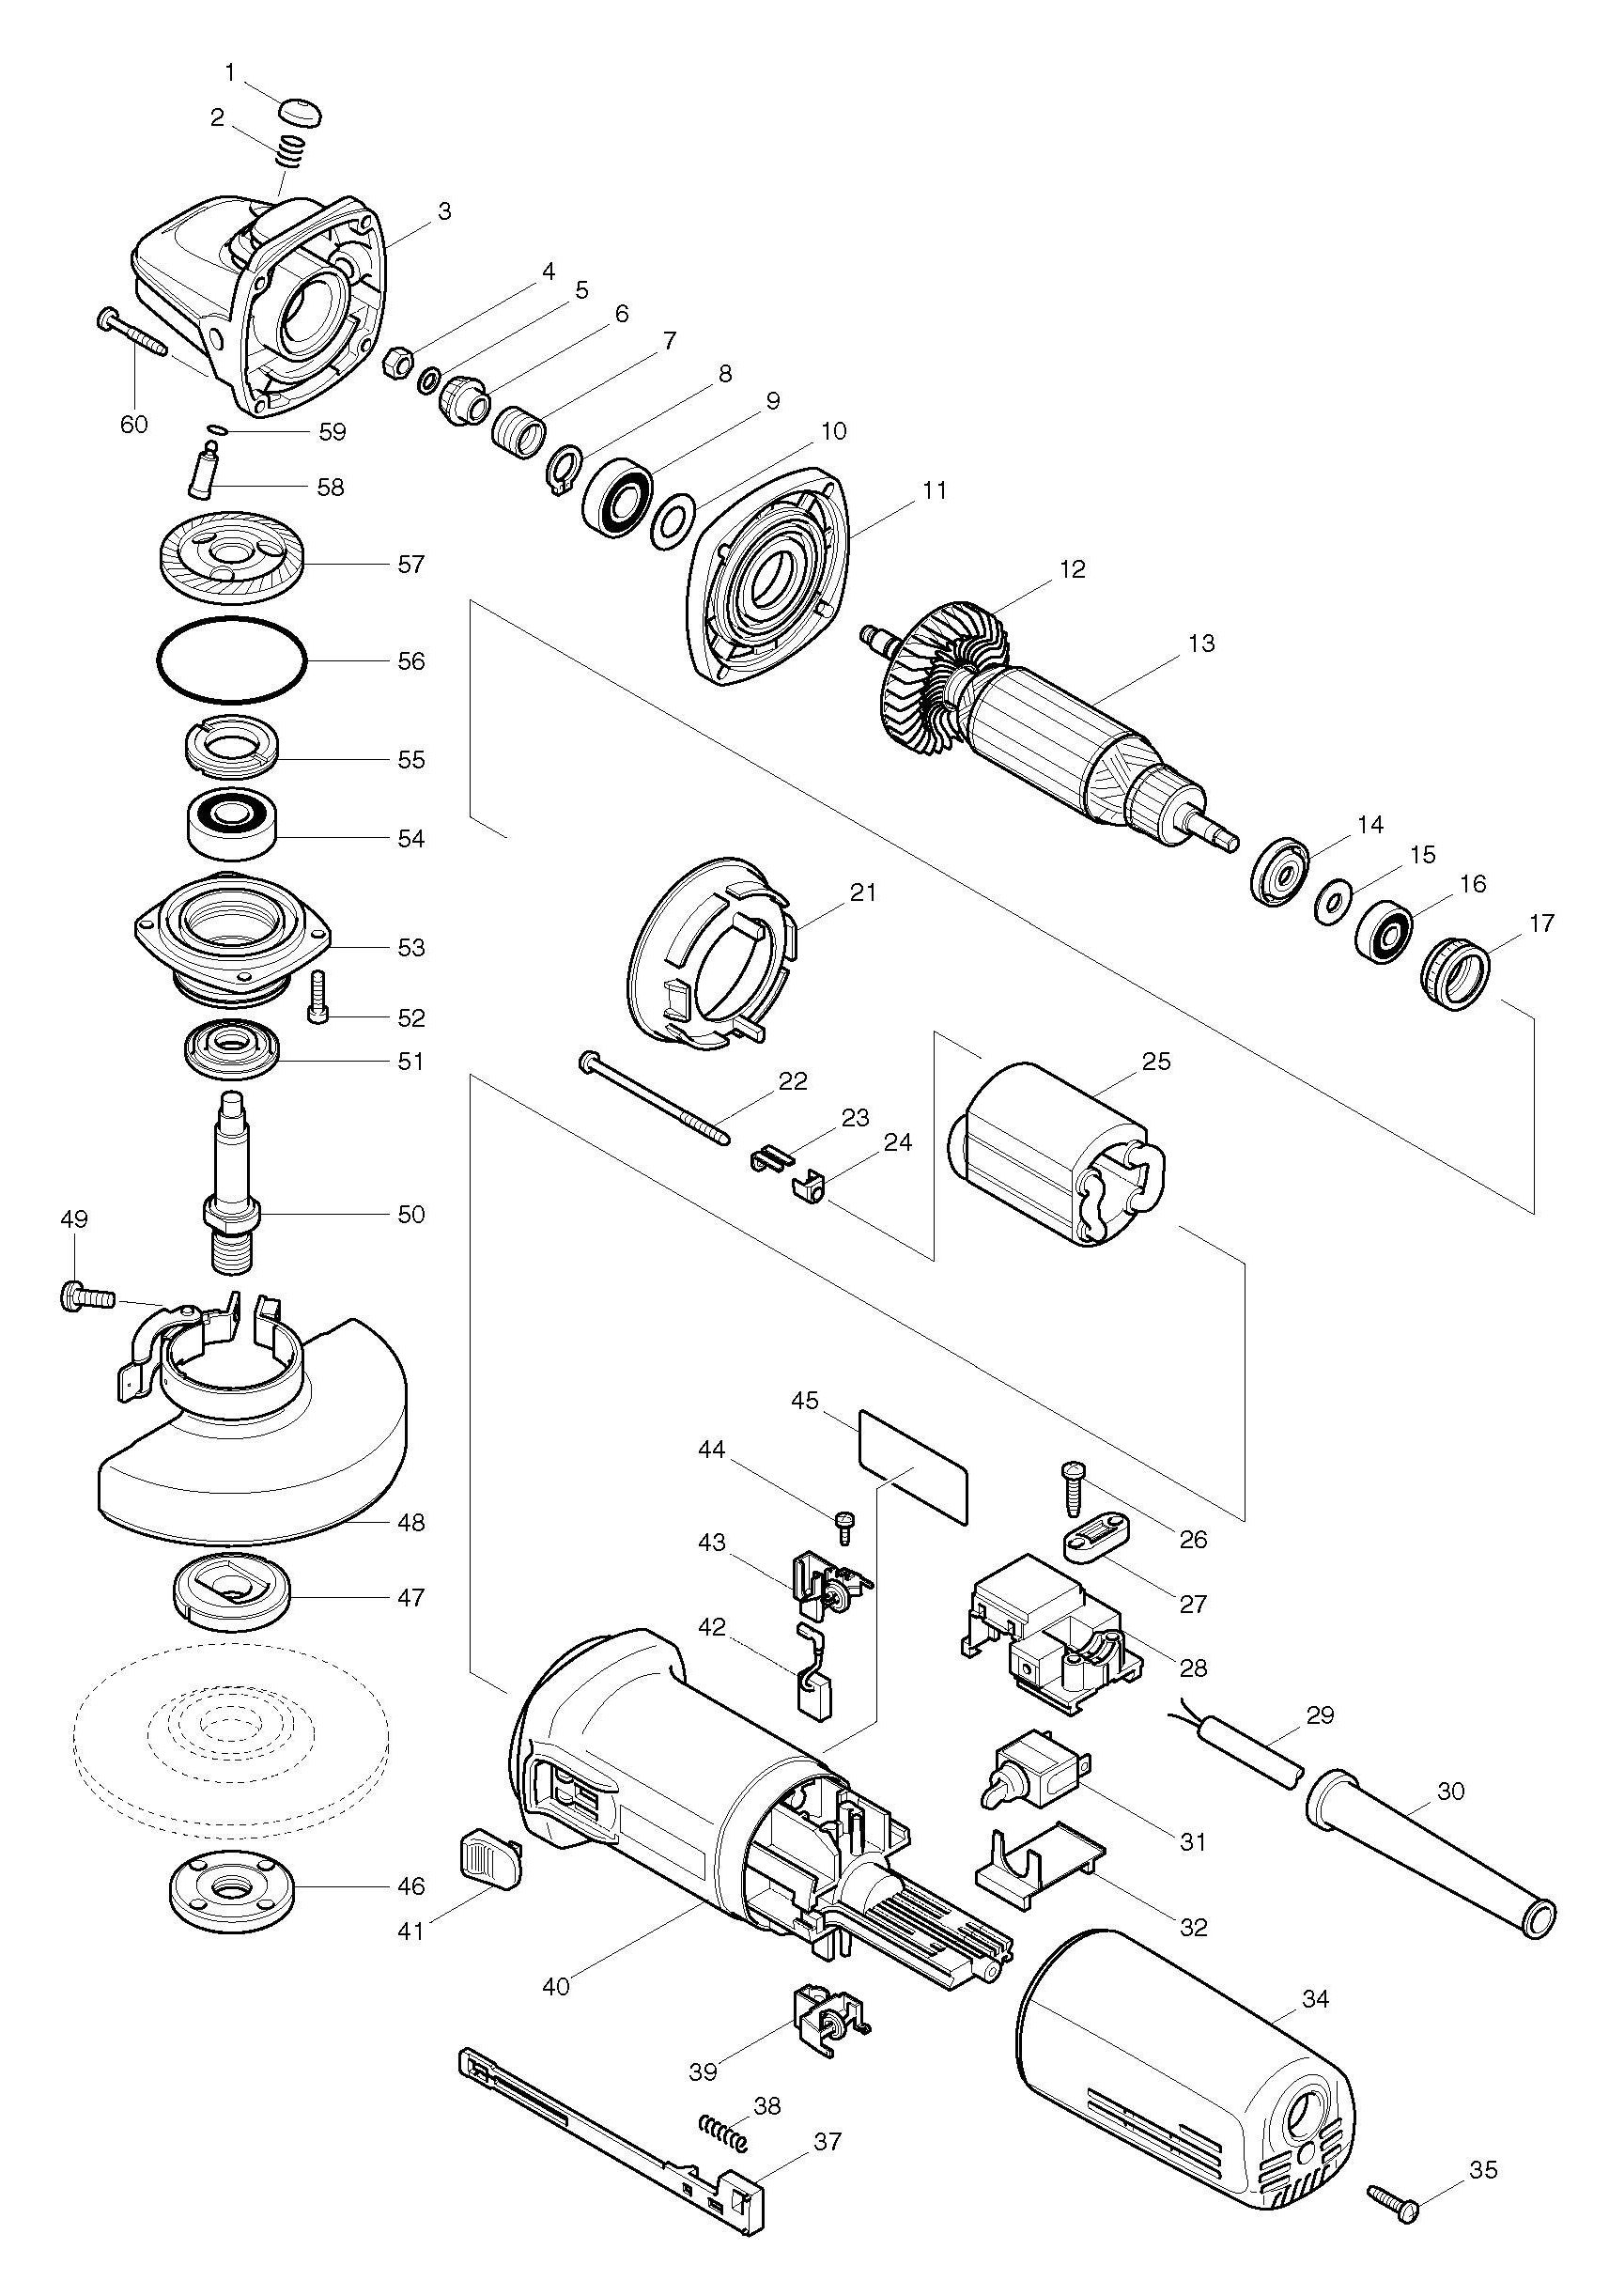 Makita Grinder Wire Diagram Electronicswiring Click For Bigger